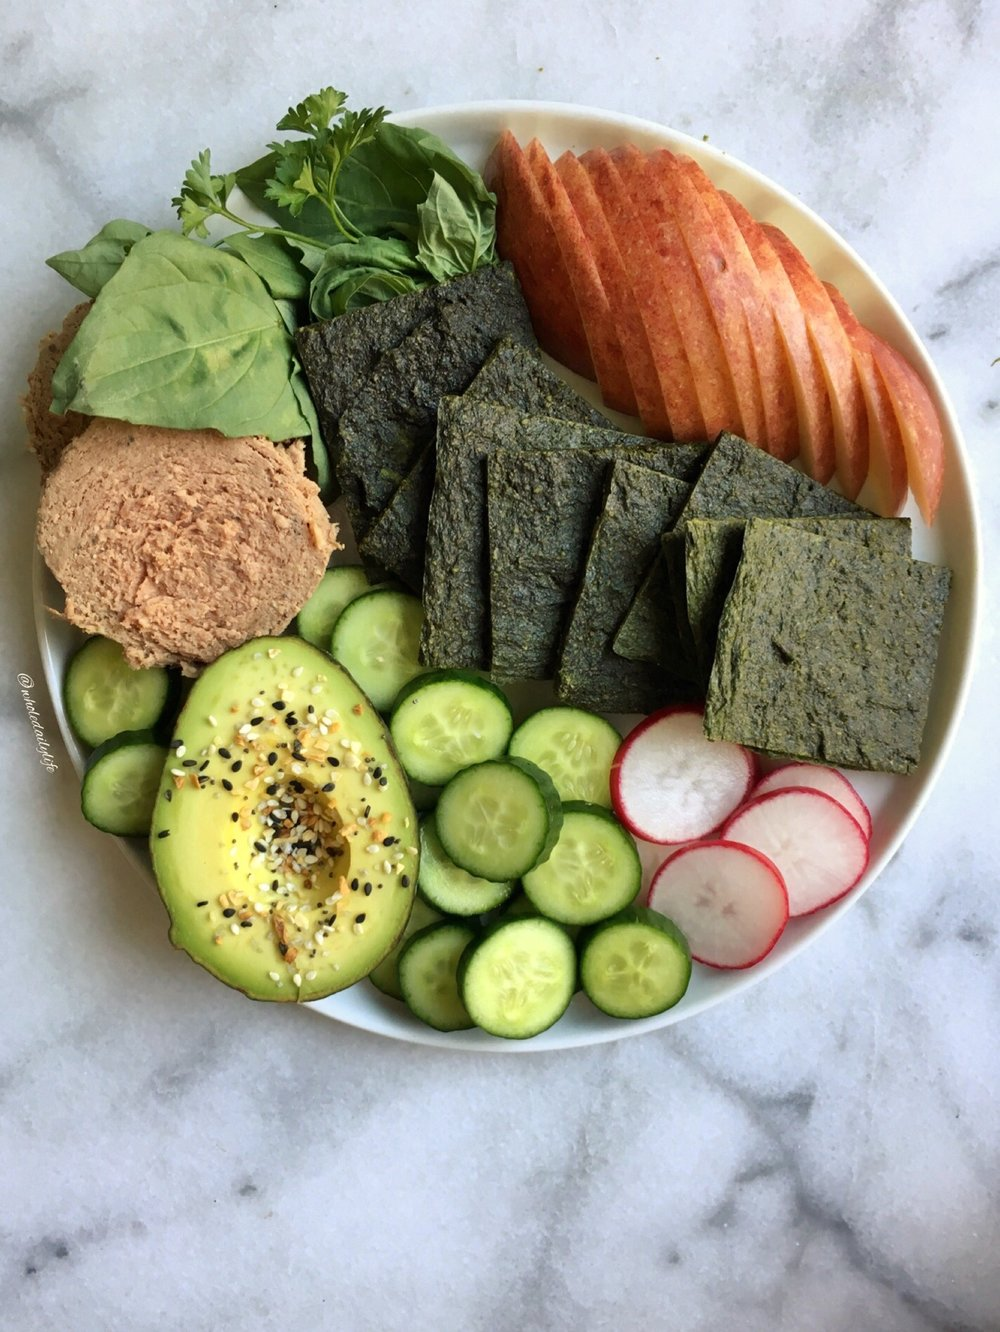 Green Flatbread  - One of my all time staples, I make a batch of this nutrient-dense detoxing green flatbread almost every week! It's a great way to increase my intake of greens that I never get tired of!